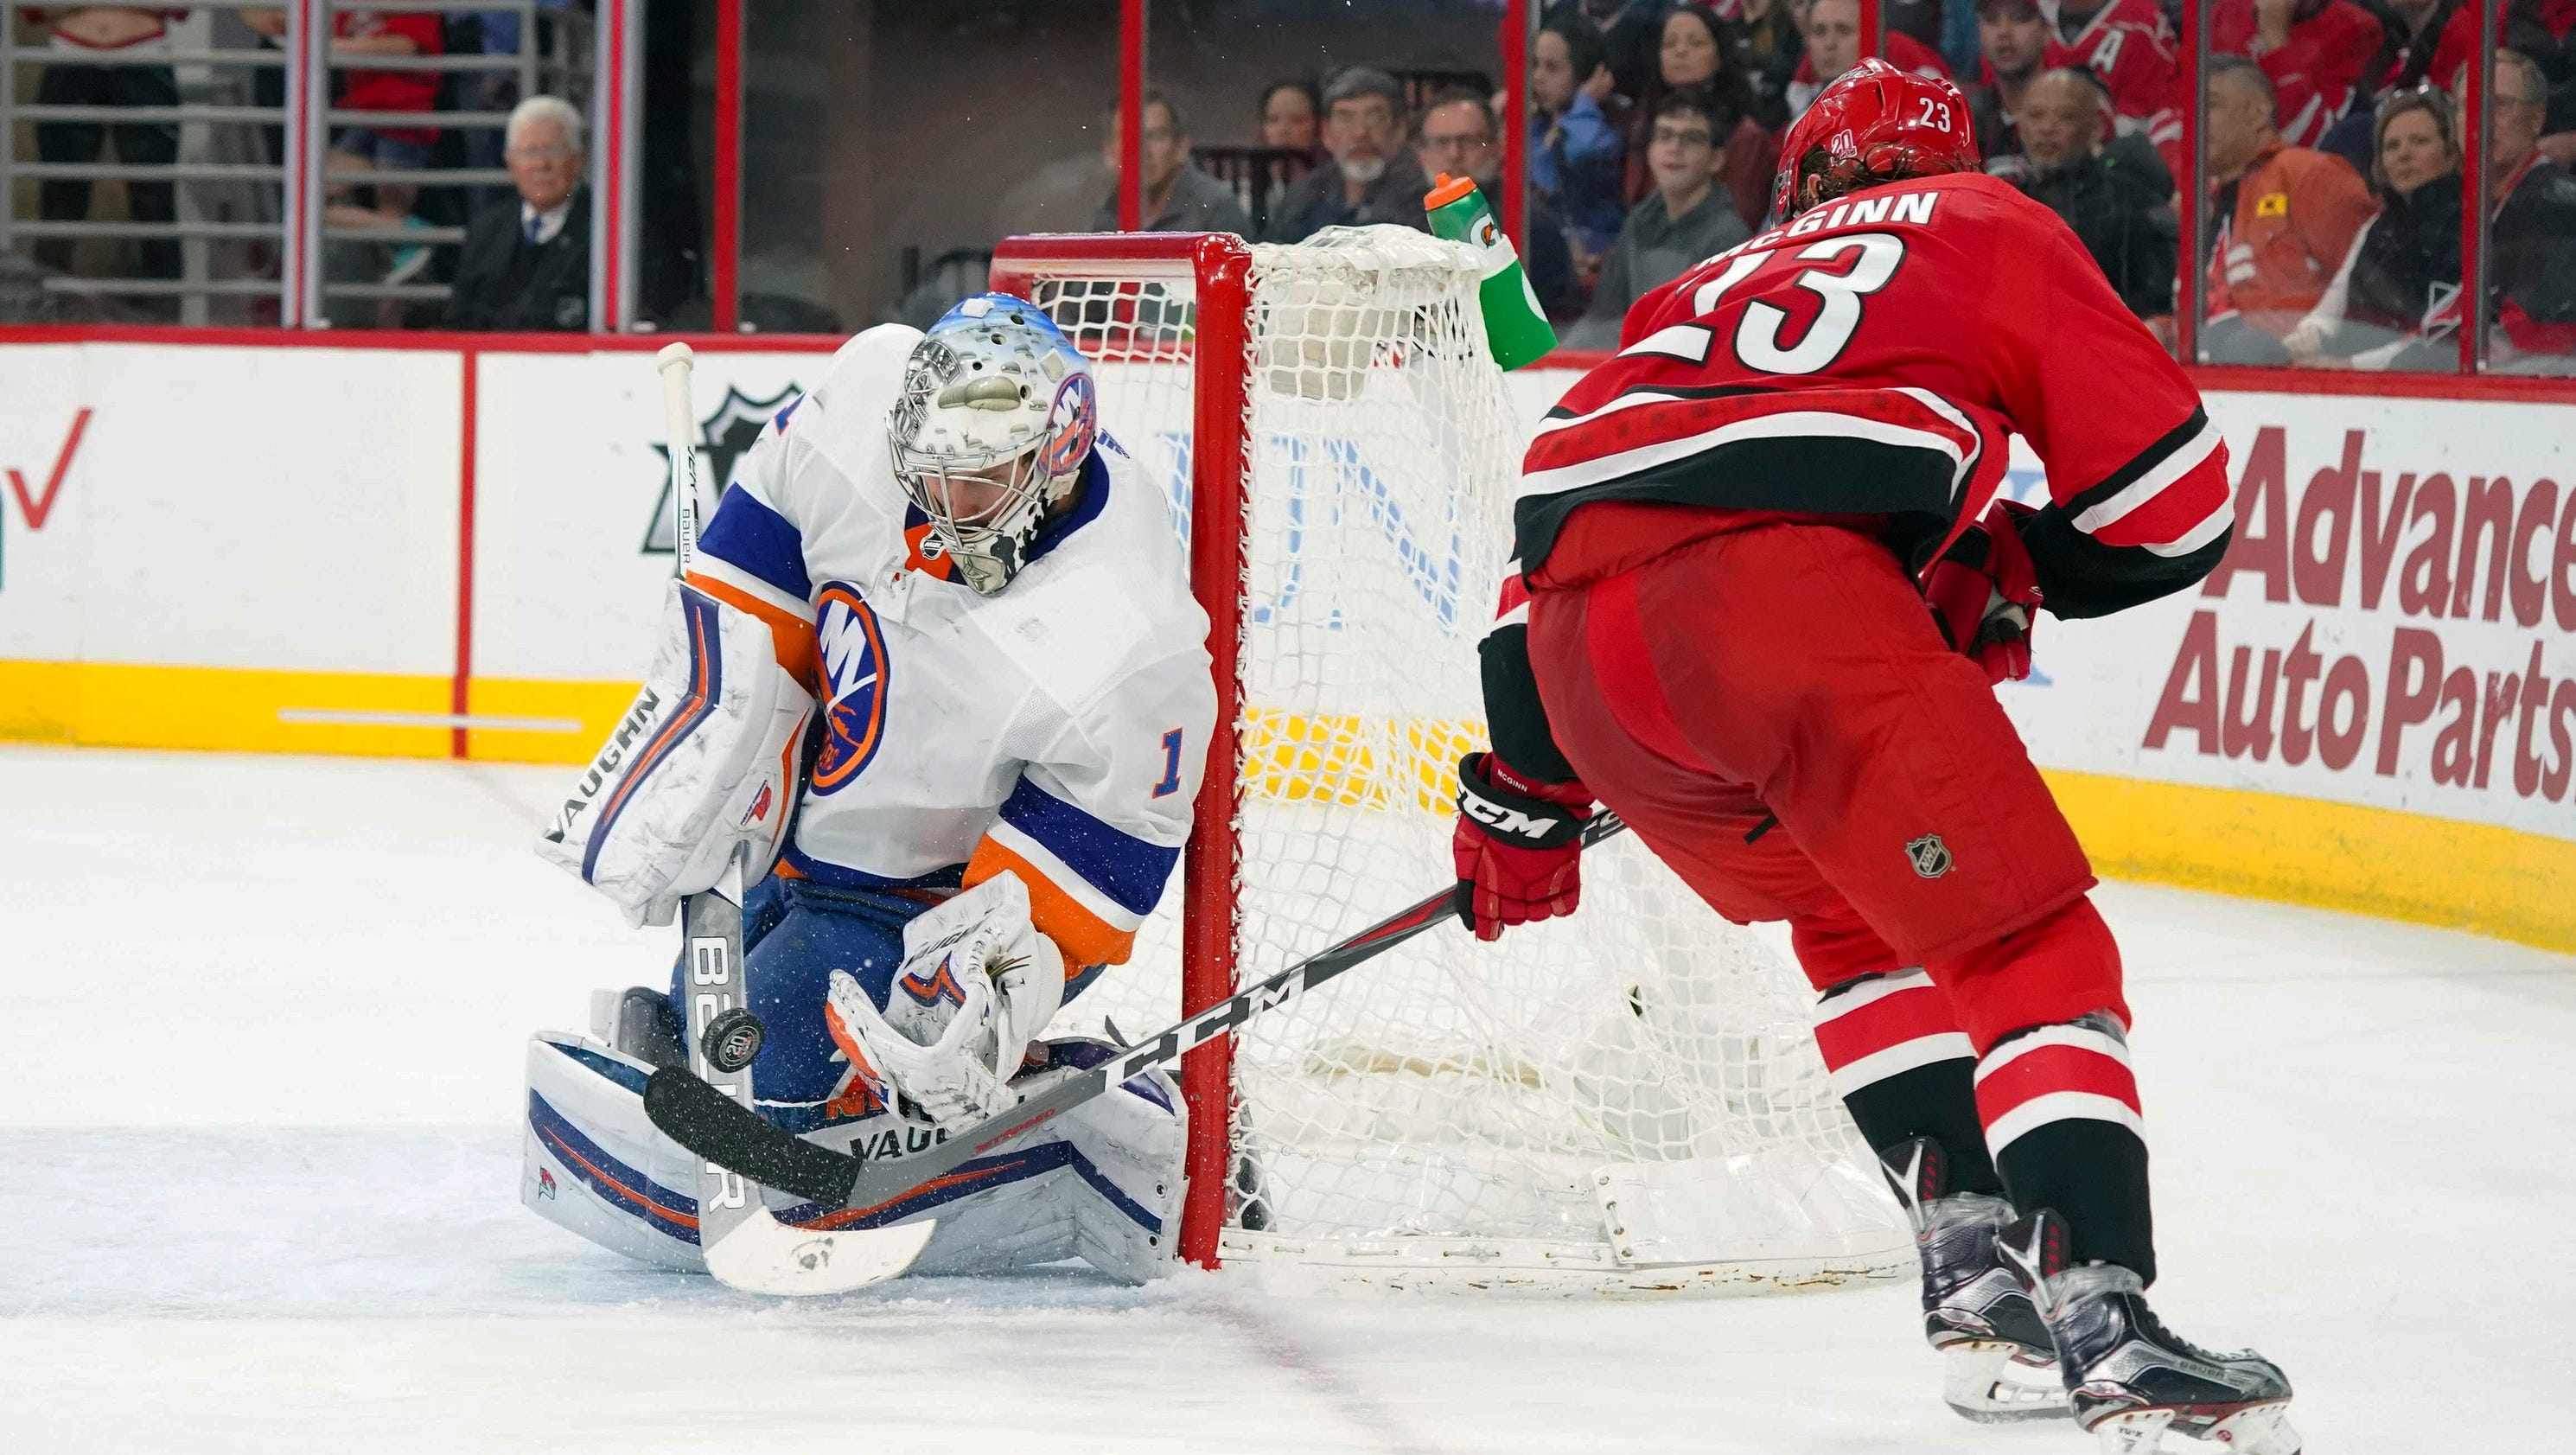 636544175135337980-usp-nhl--new-york-islanders-at-carolina-hurricanes